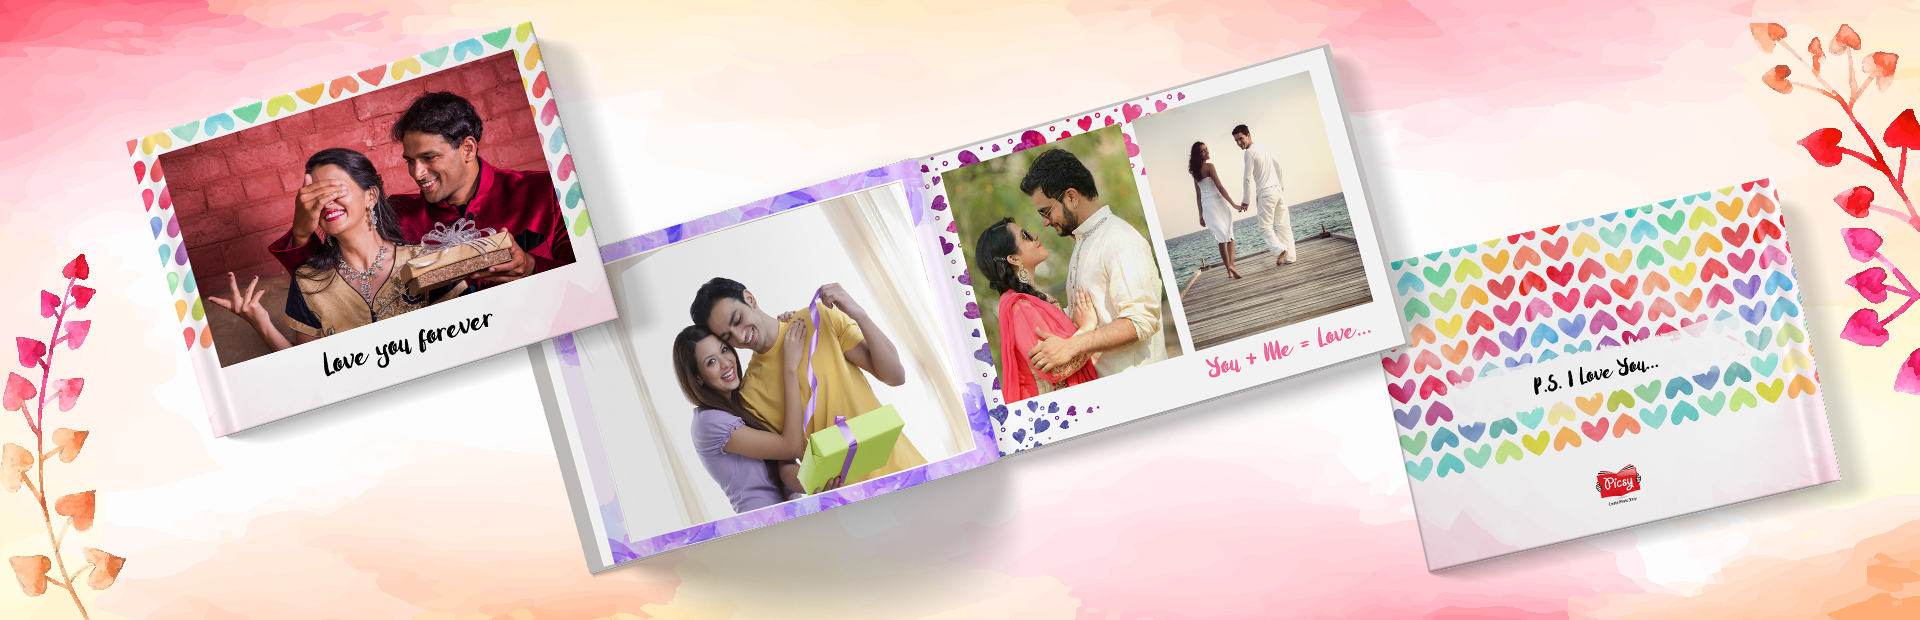 Love story Photo Books Online